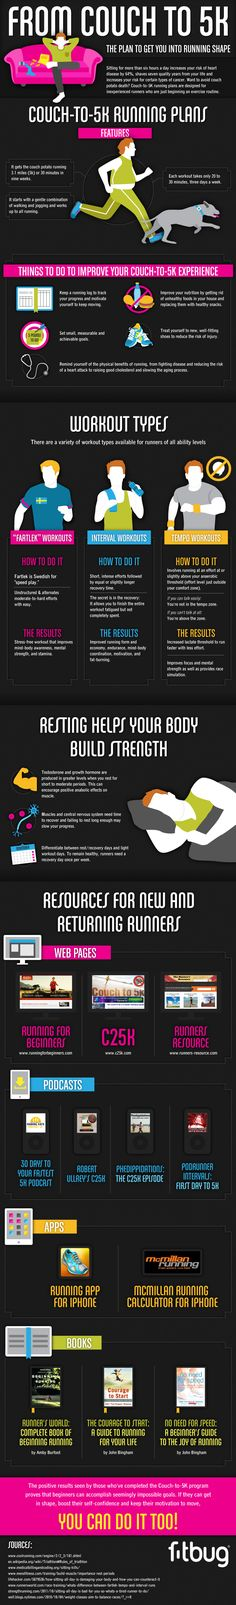 From Couch to 5K Infographic - The Fitbug Blog